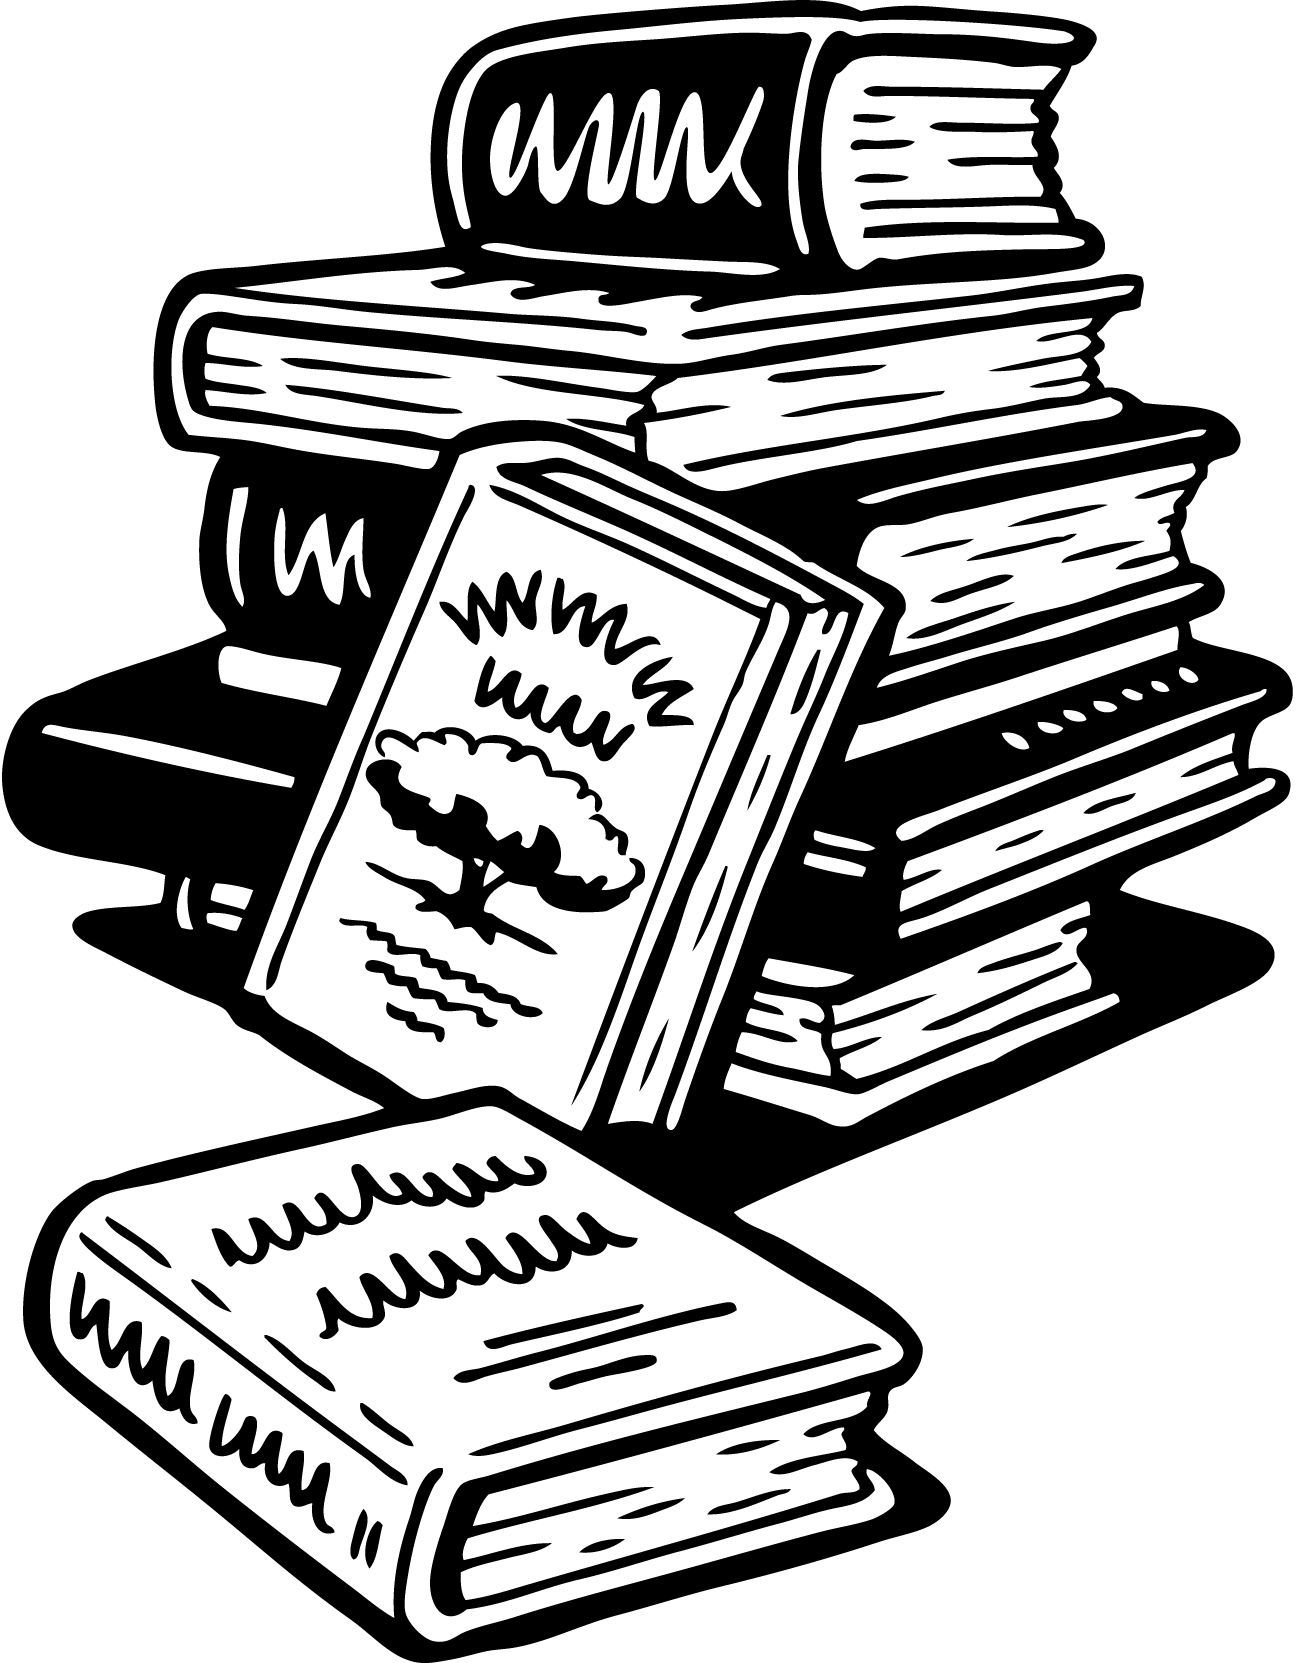 Images For Stack Of Books Cartoon Black And White Clip Art Black And White Book Clip Art Books Cartoon